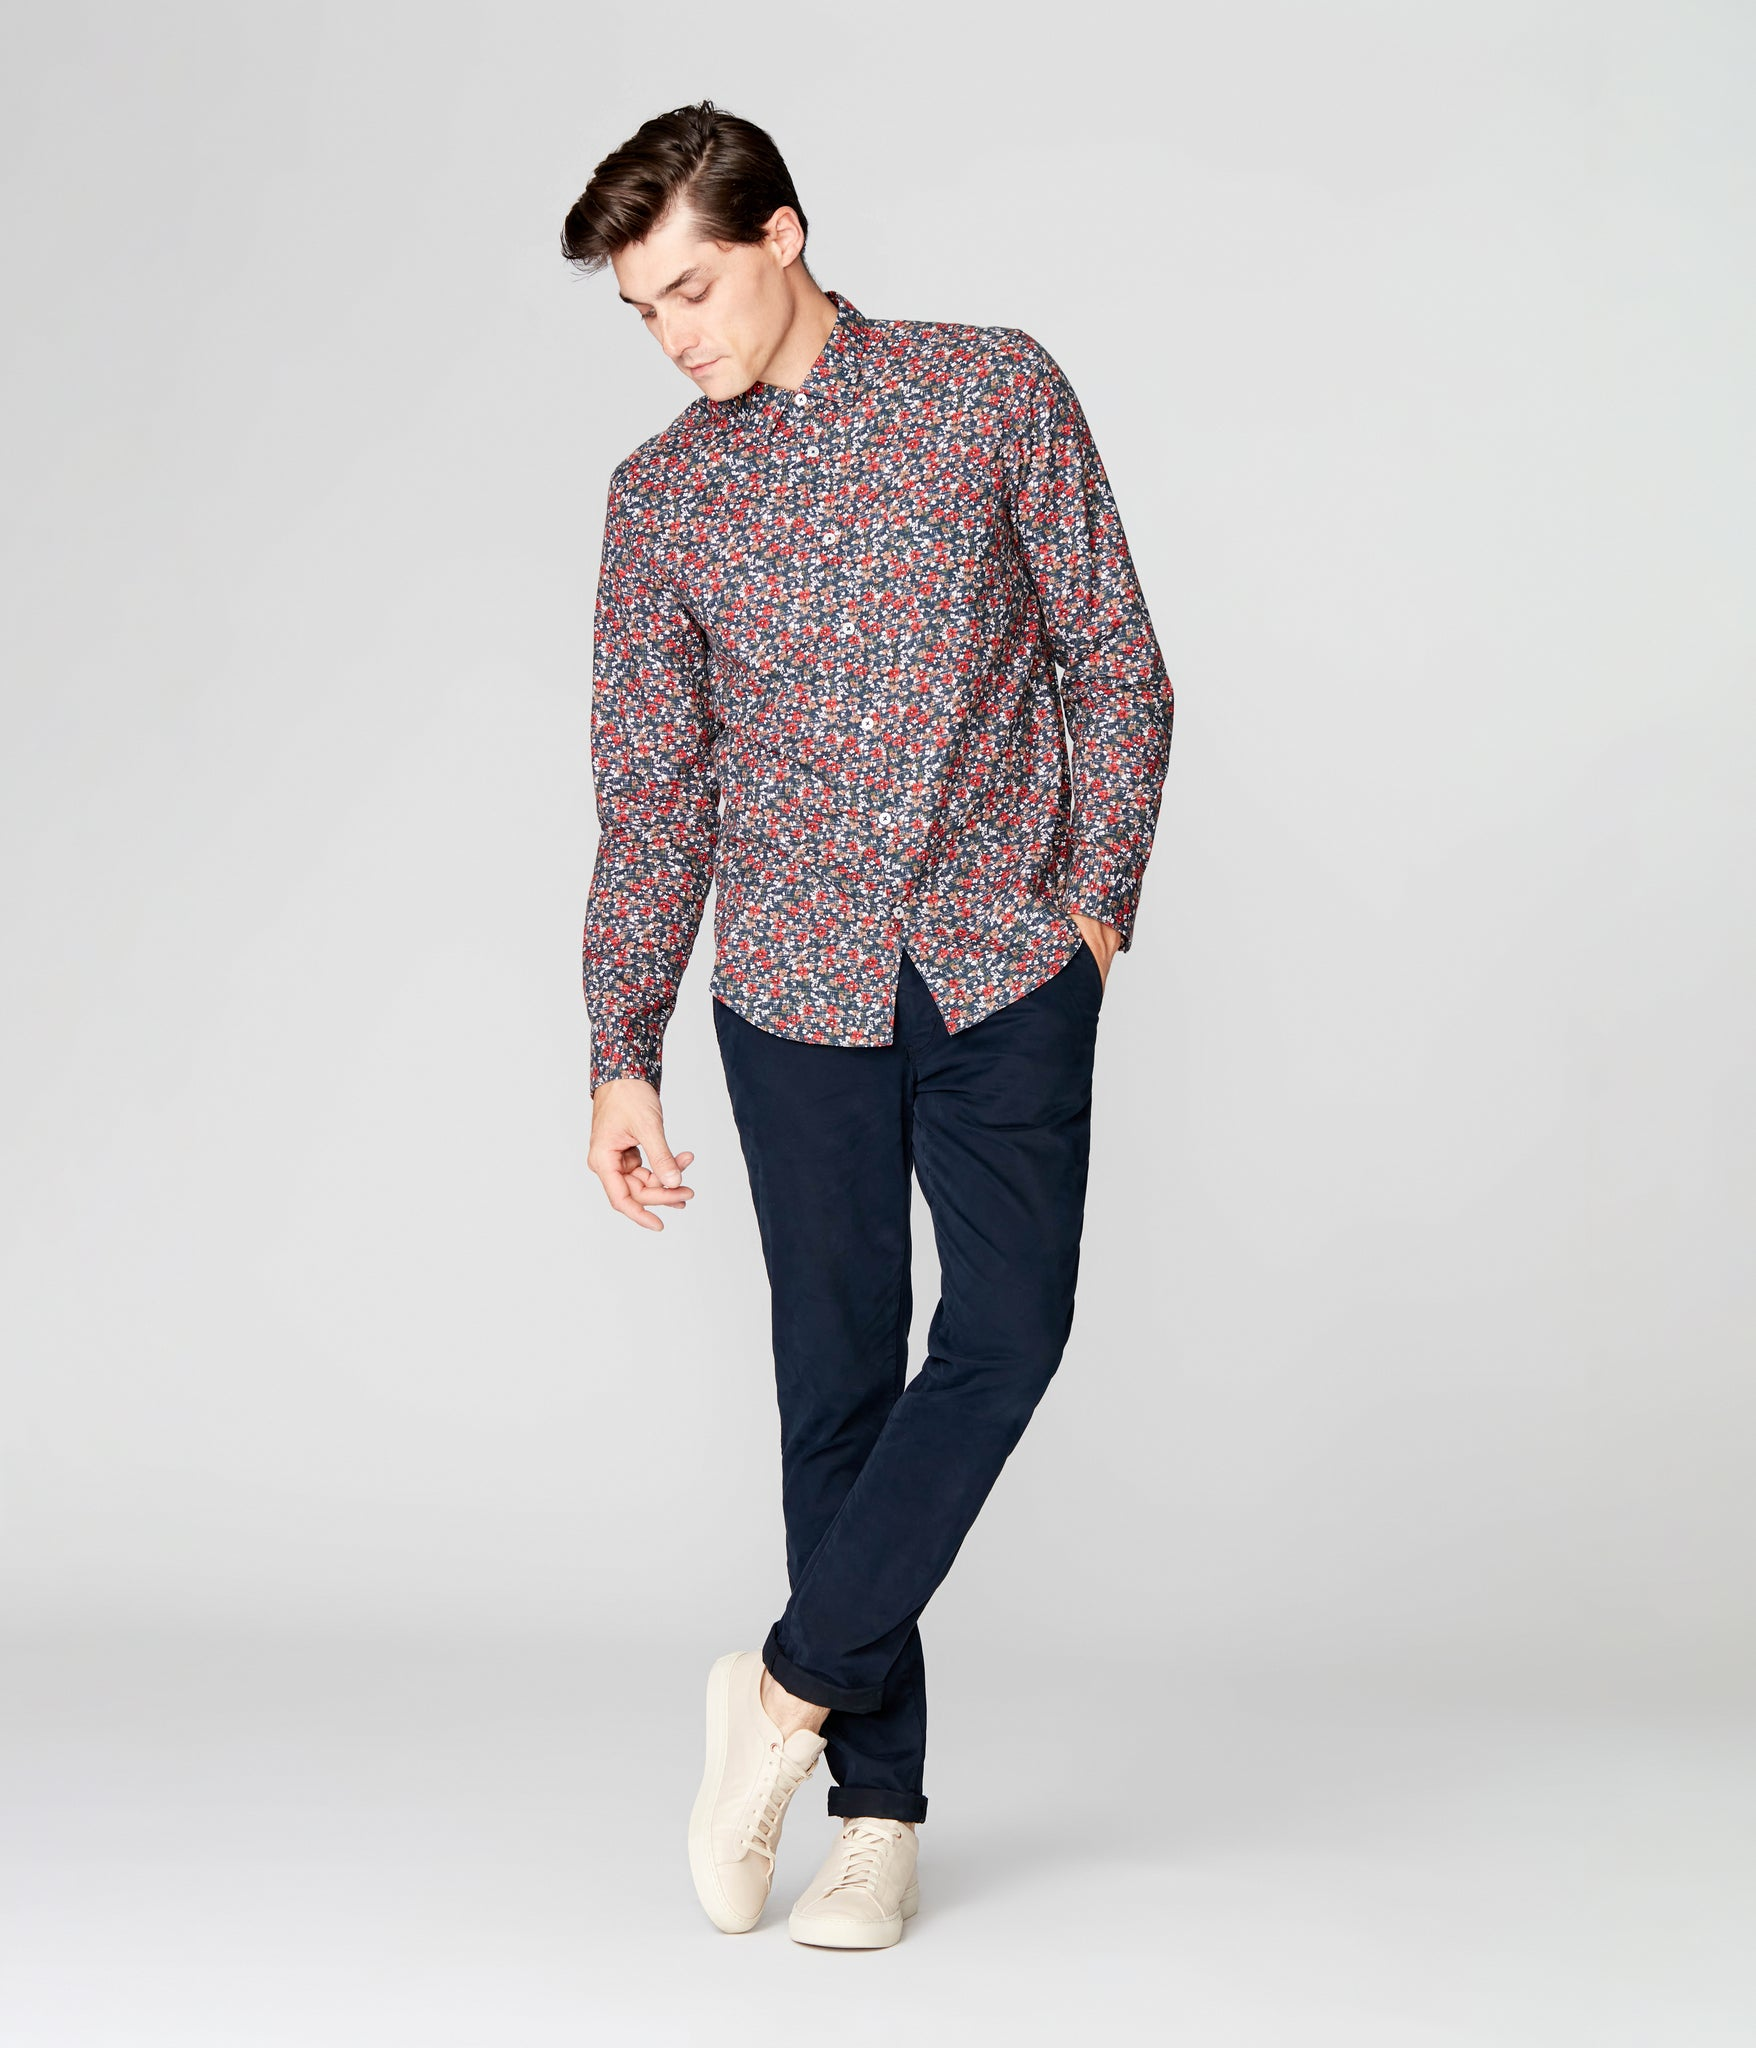 On-Point Print Shirt - Navy Luxembourg Floral